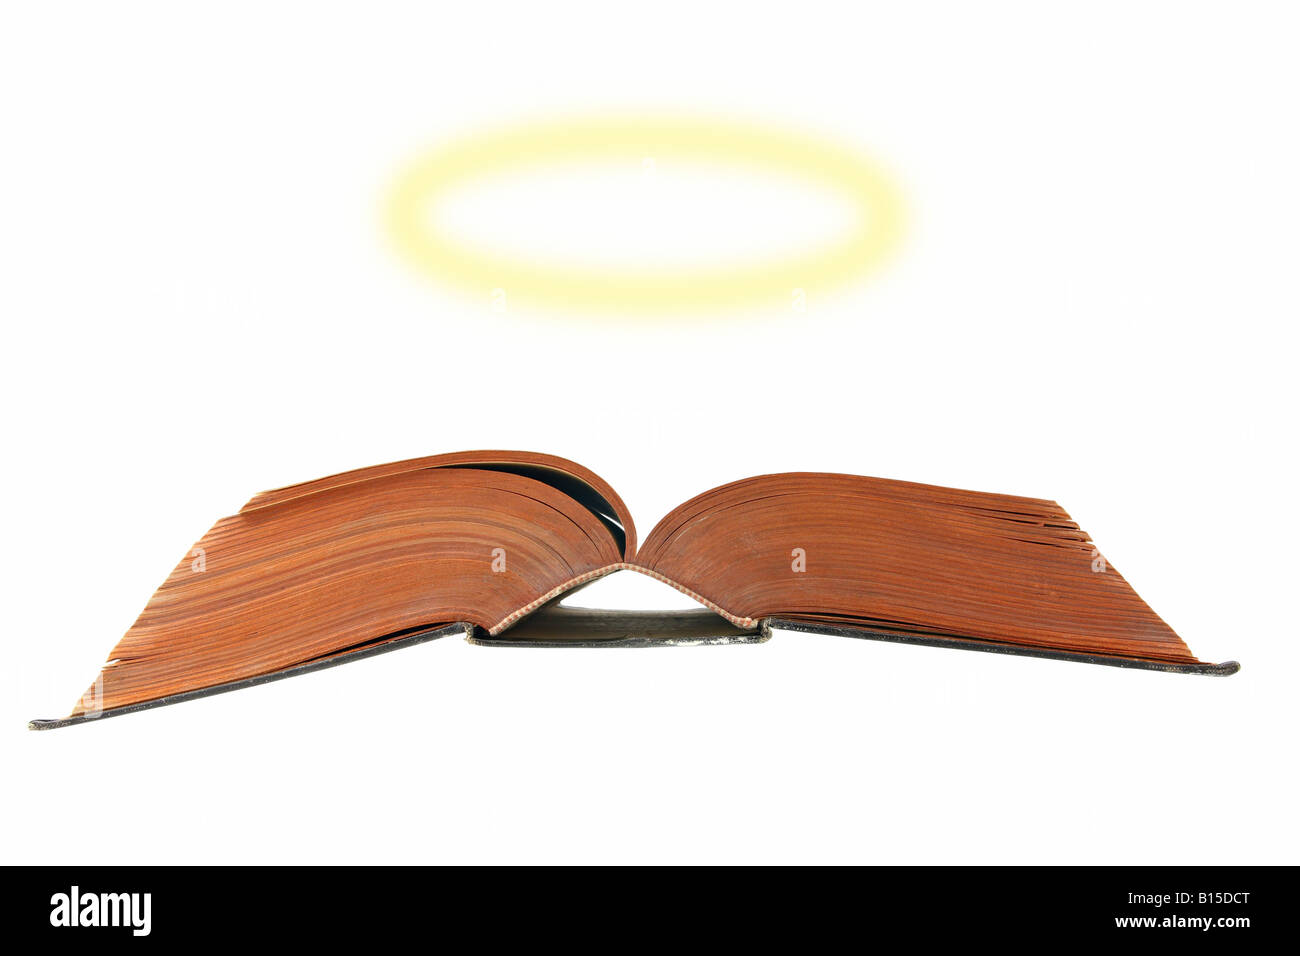 Bible with a halo - Stock Image